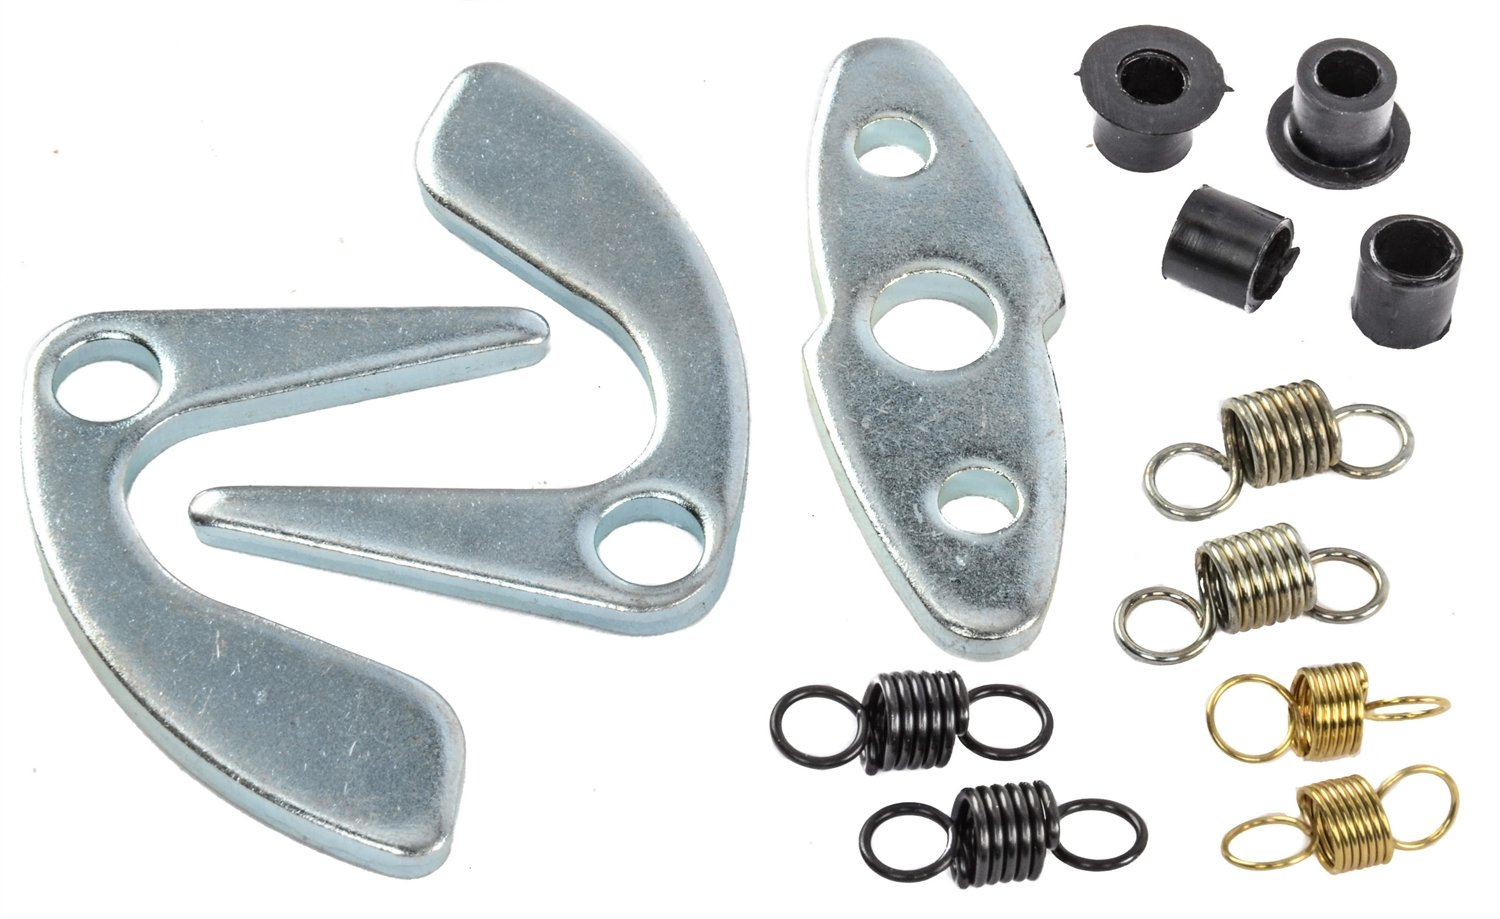 Amazon.com: JEGS Performance Products 40009K1 High-Performance HEI ...